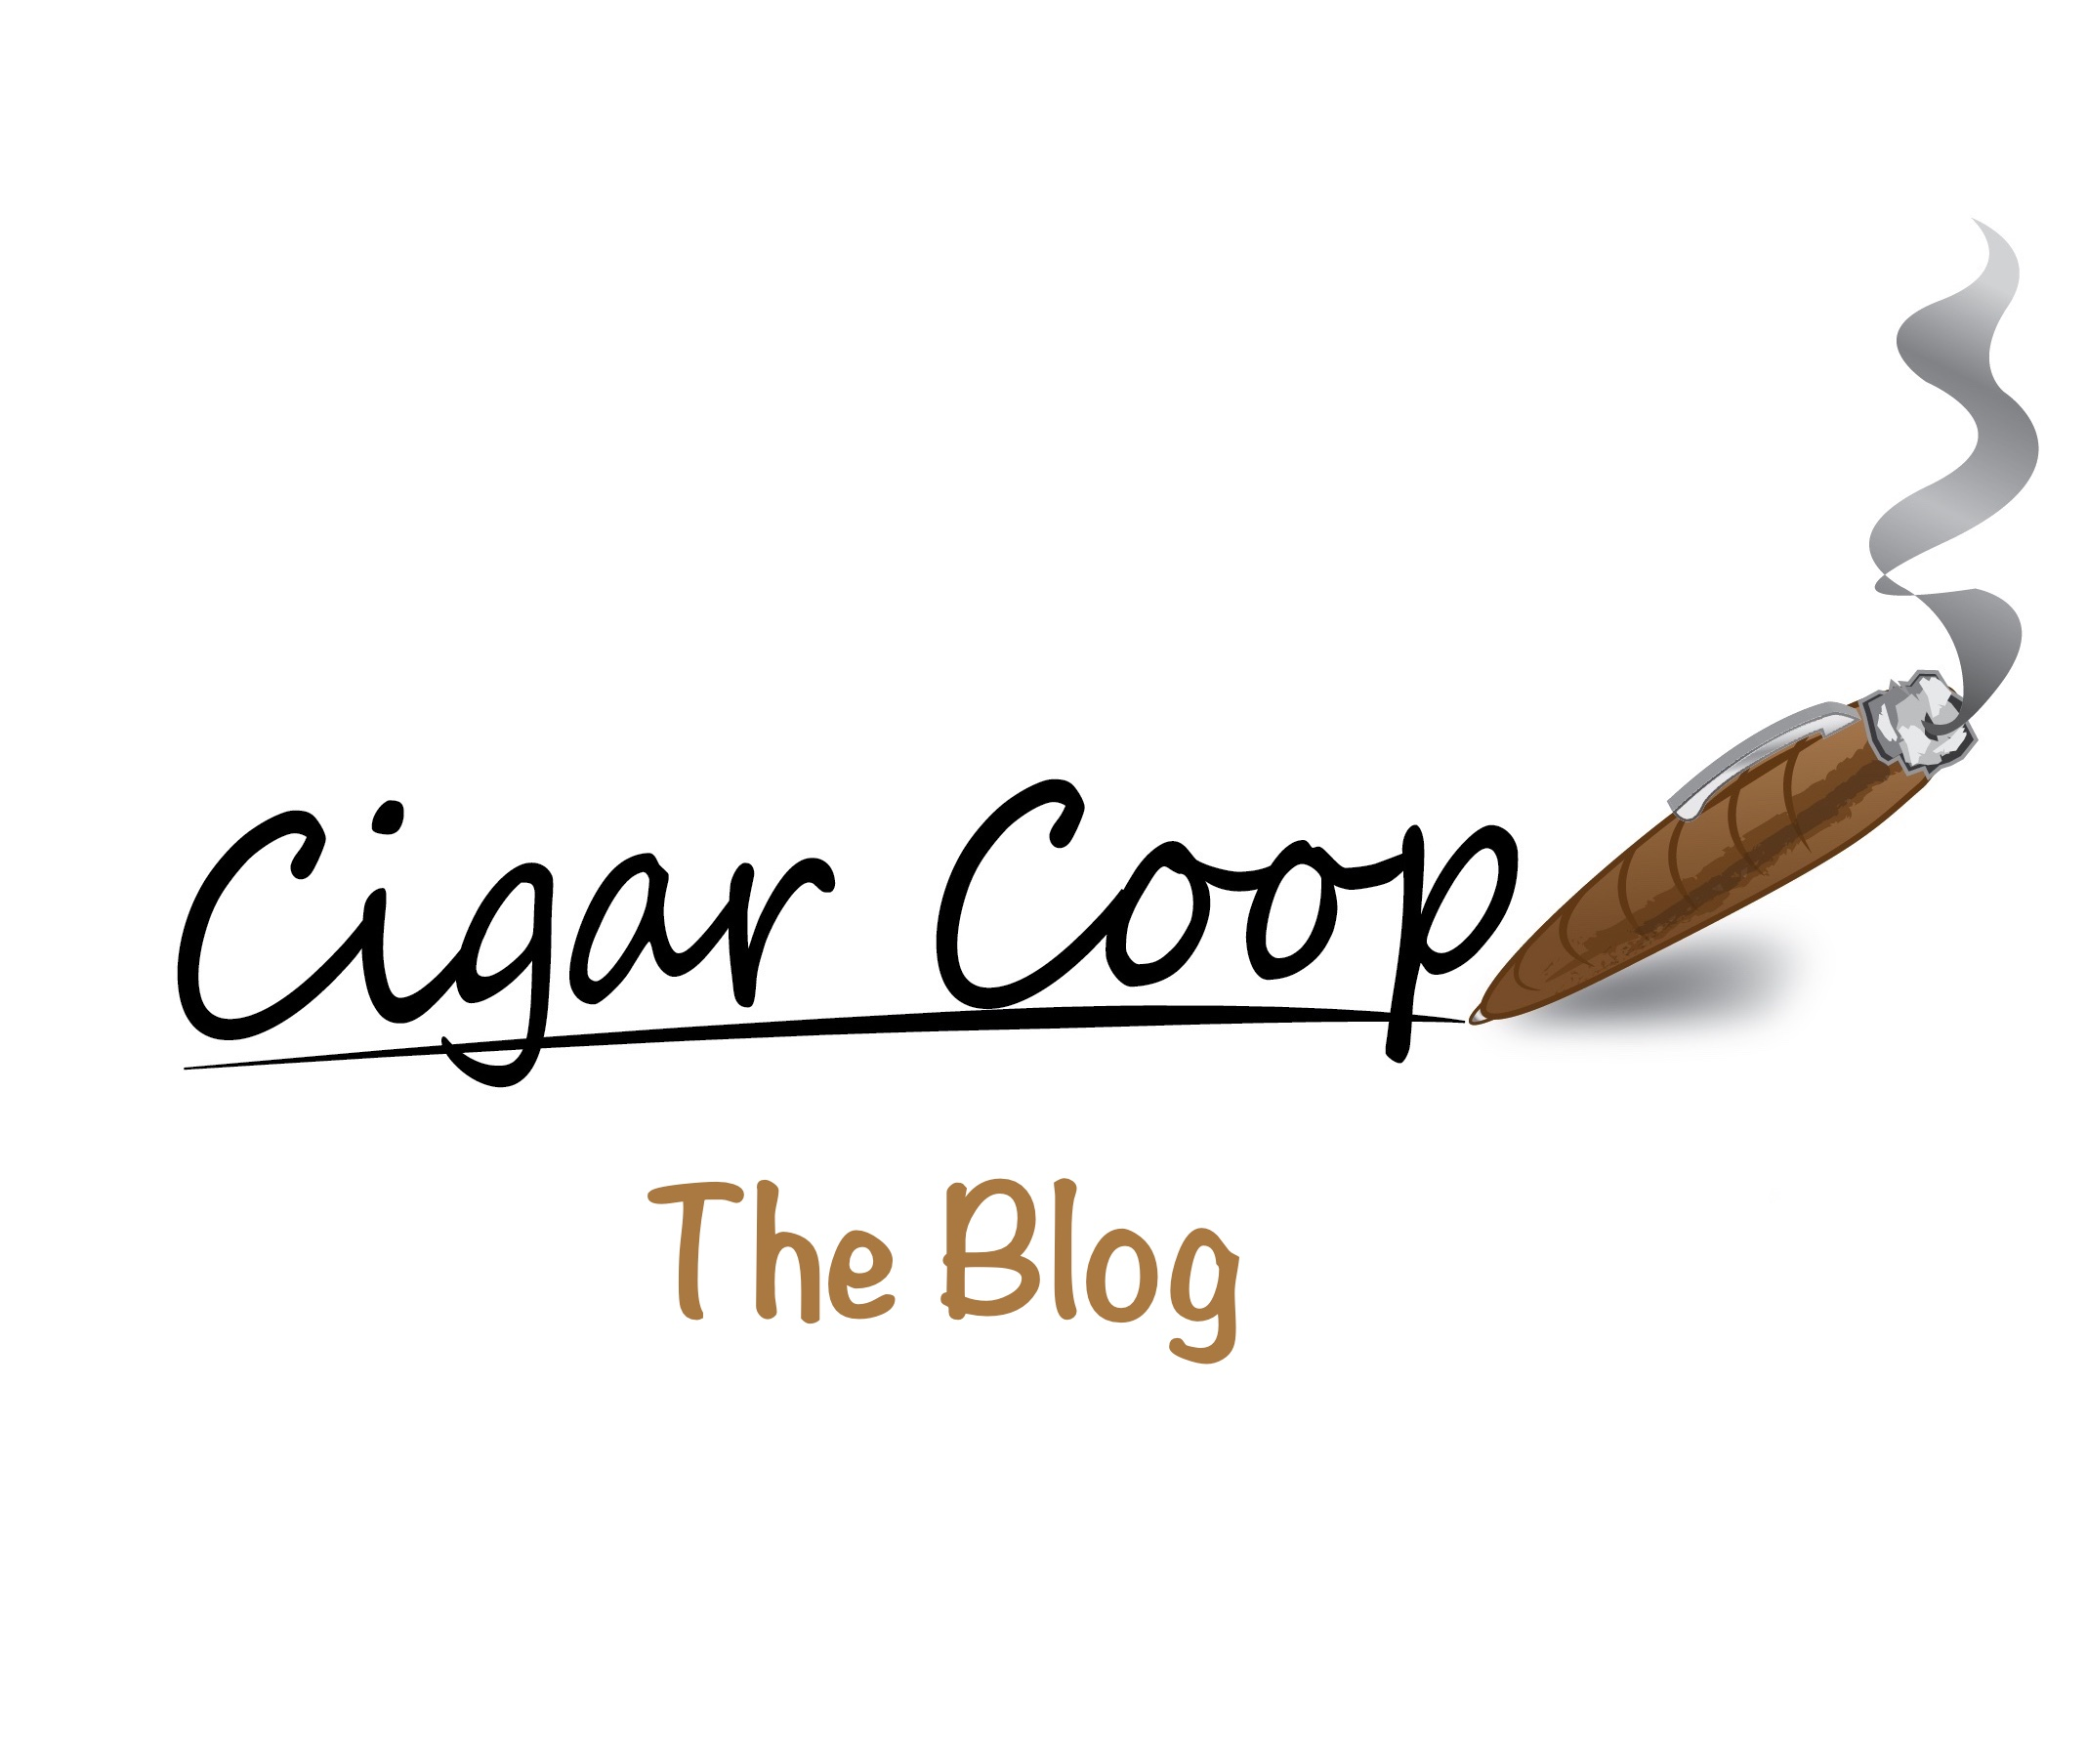 The Blog: With PCA 2020 Cancelled, What Will Cigar Coop Do Now?